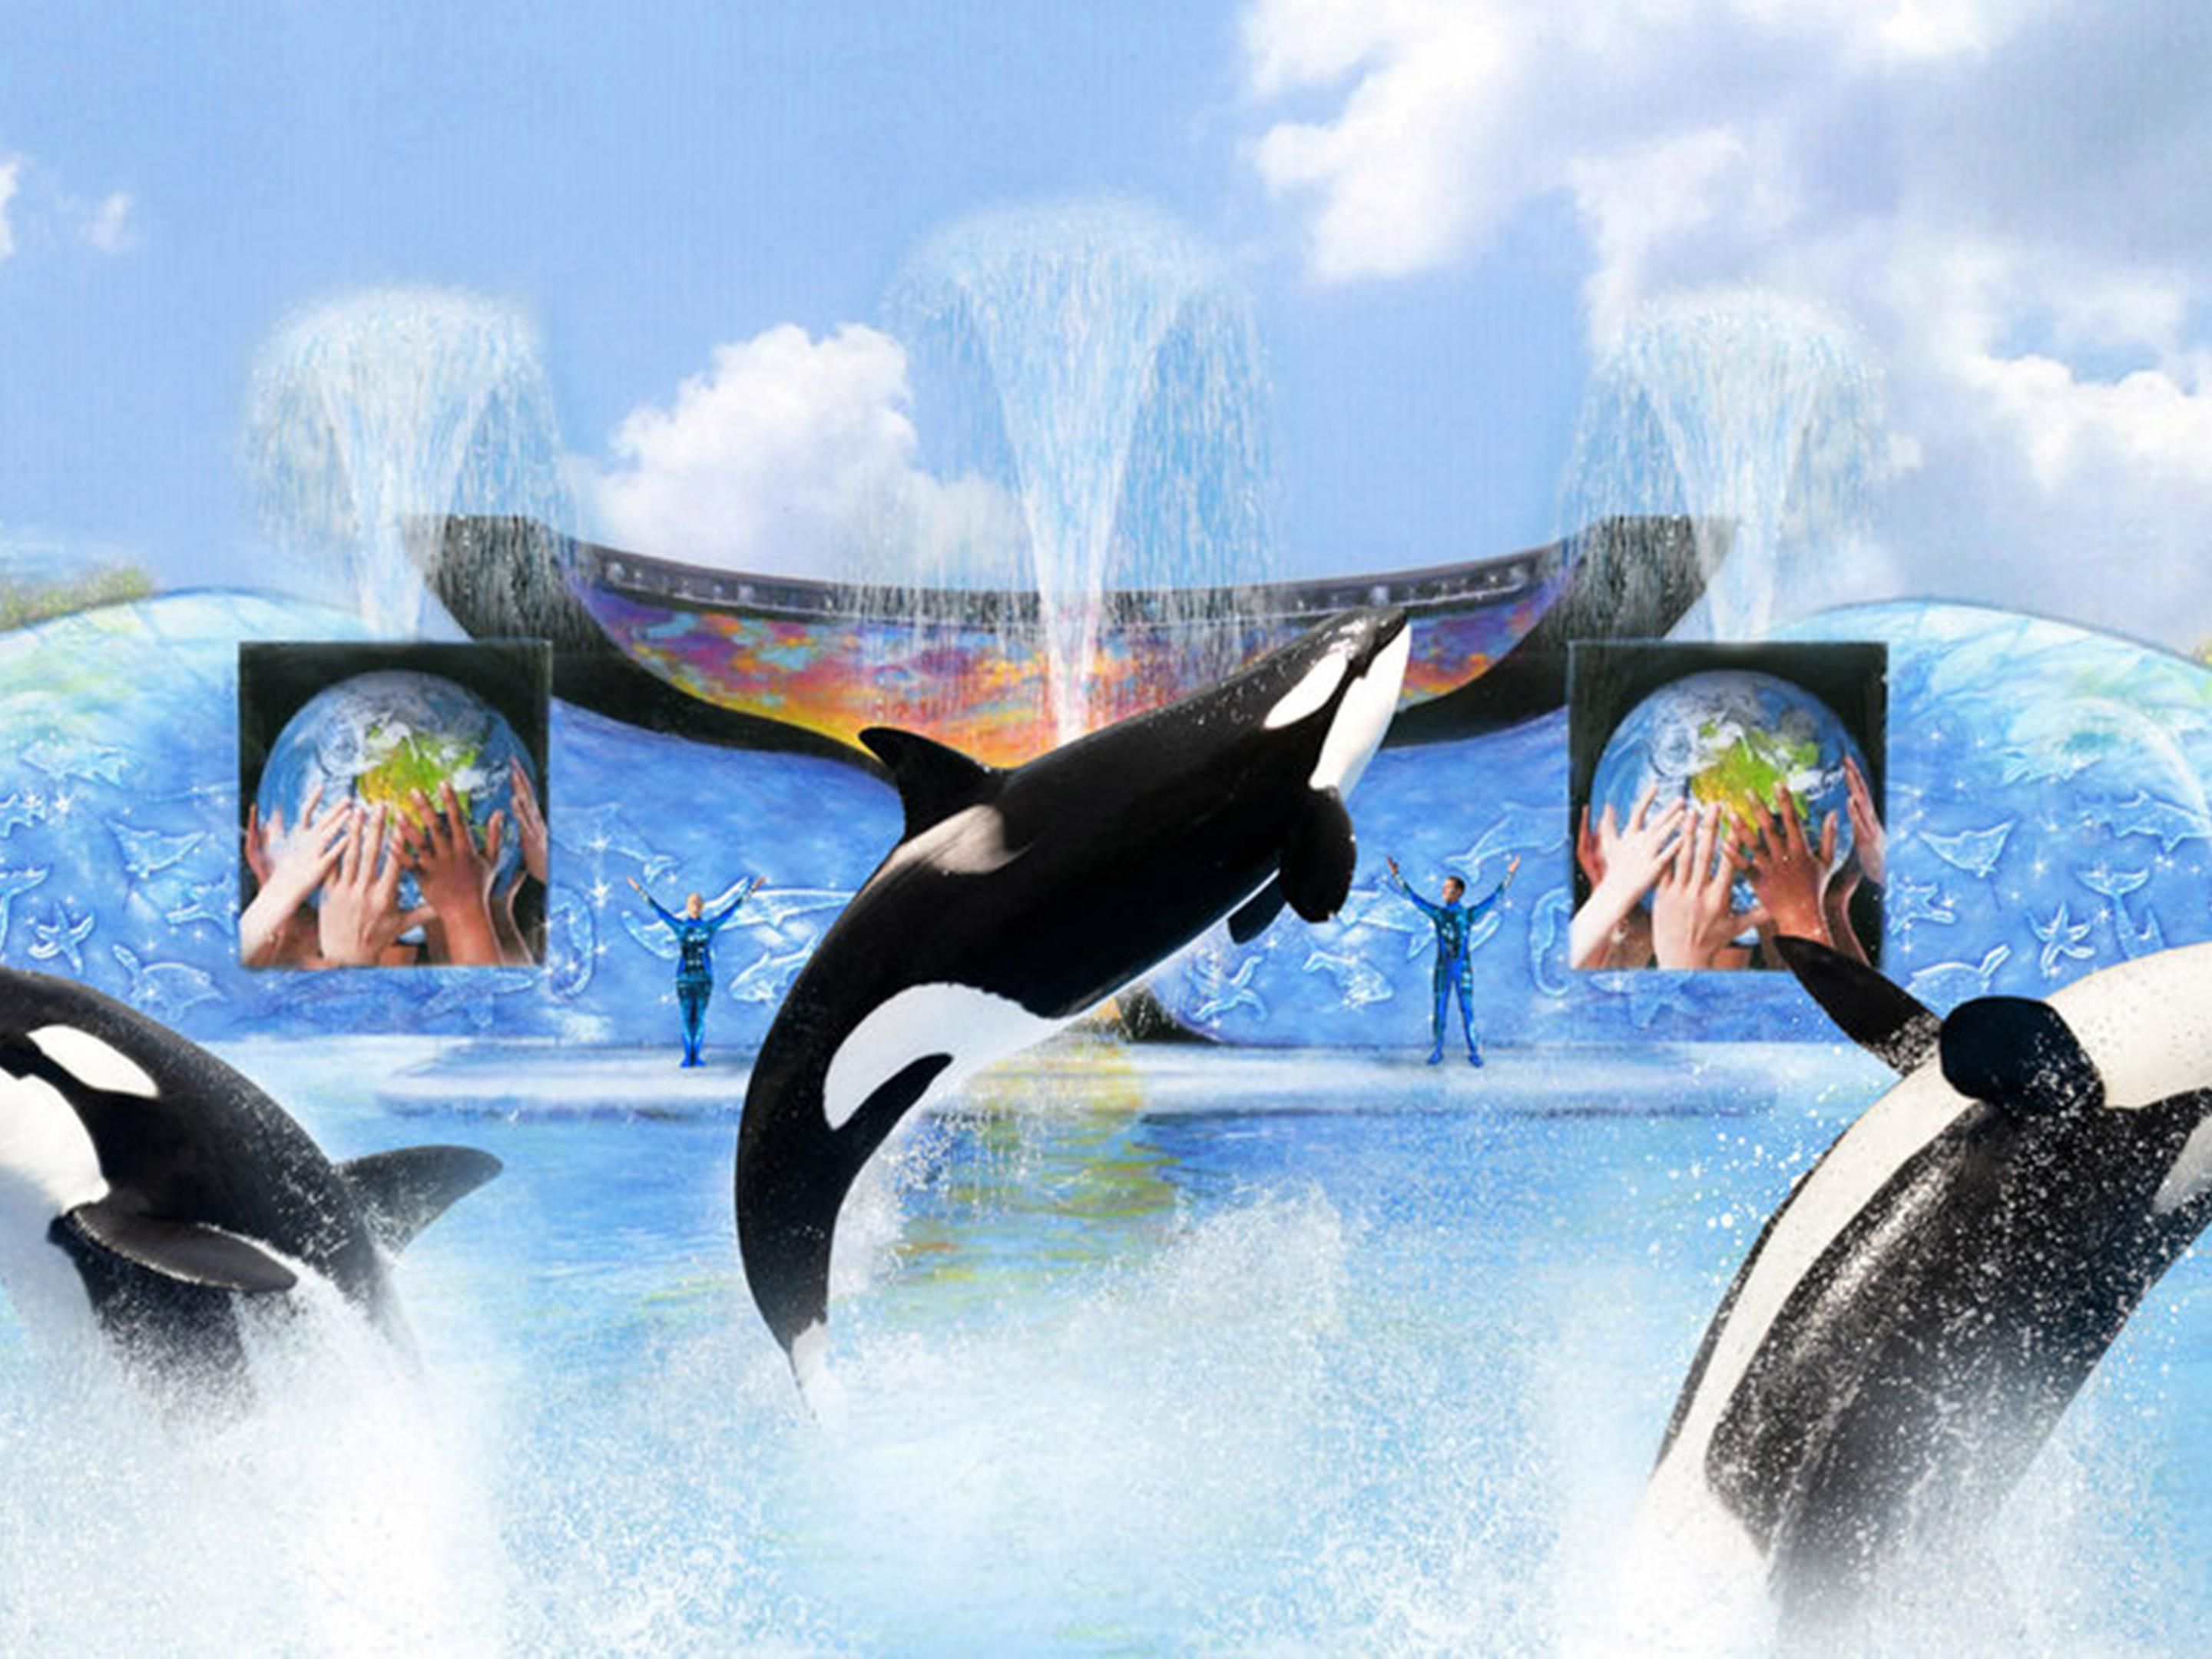 Have a whale of a good time at SeaWorld San Diego.